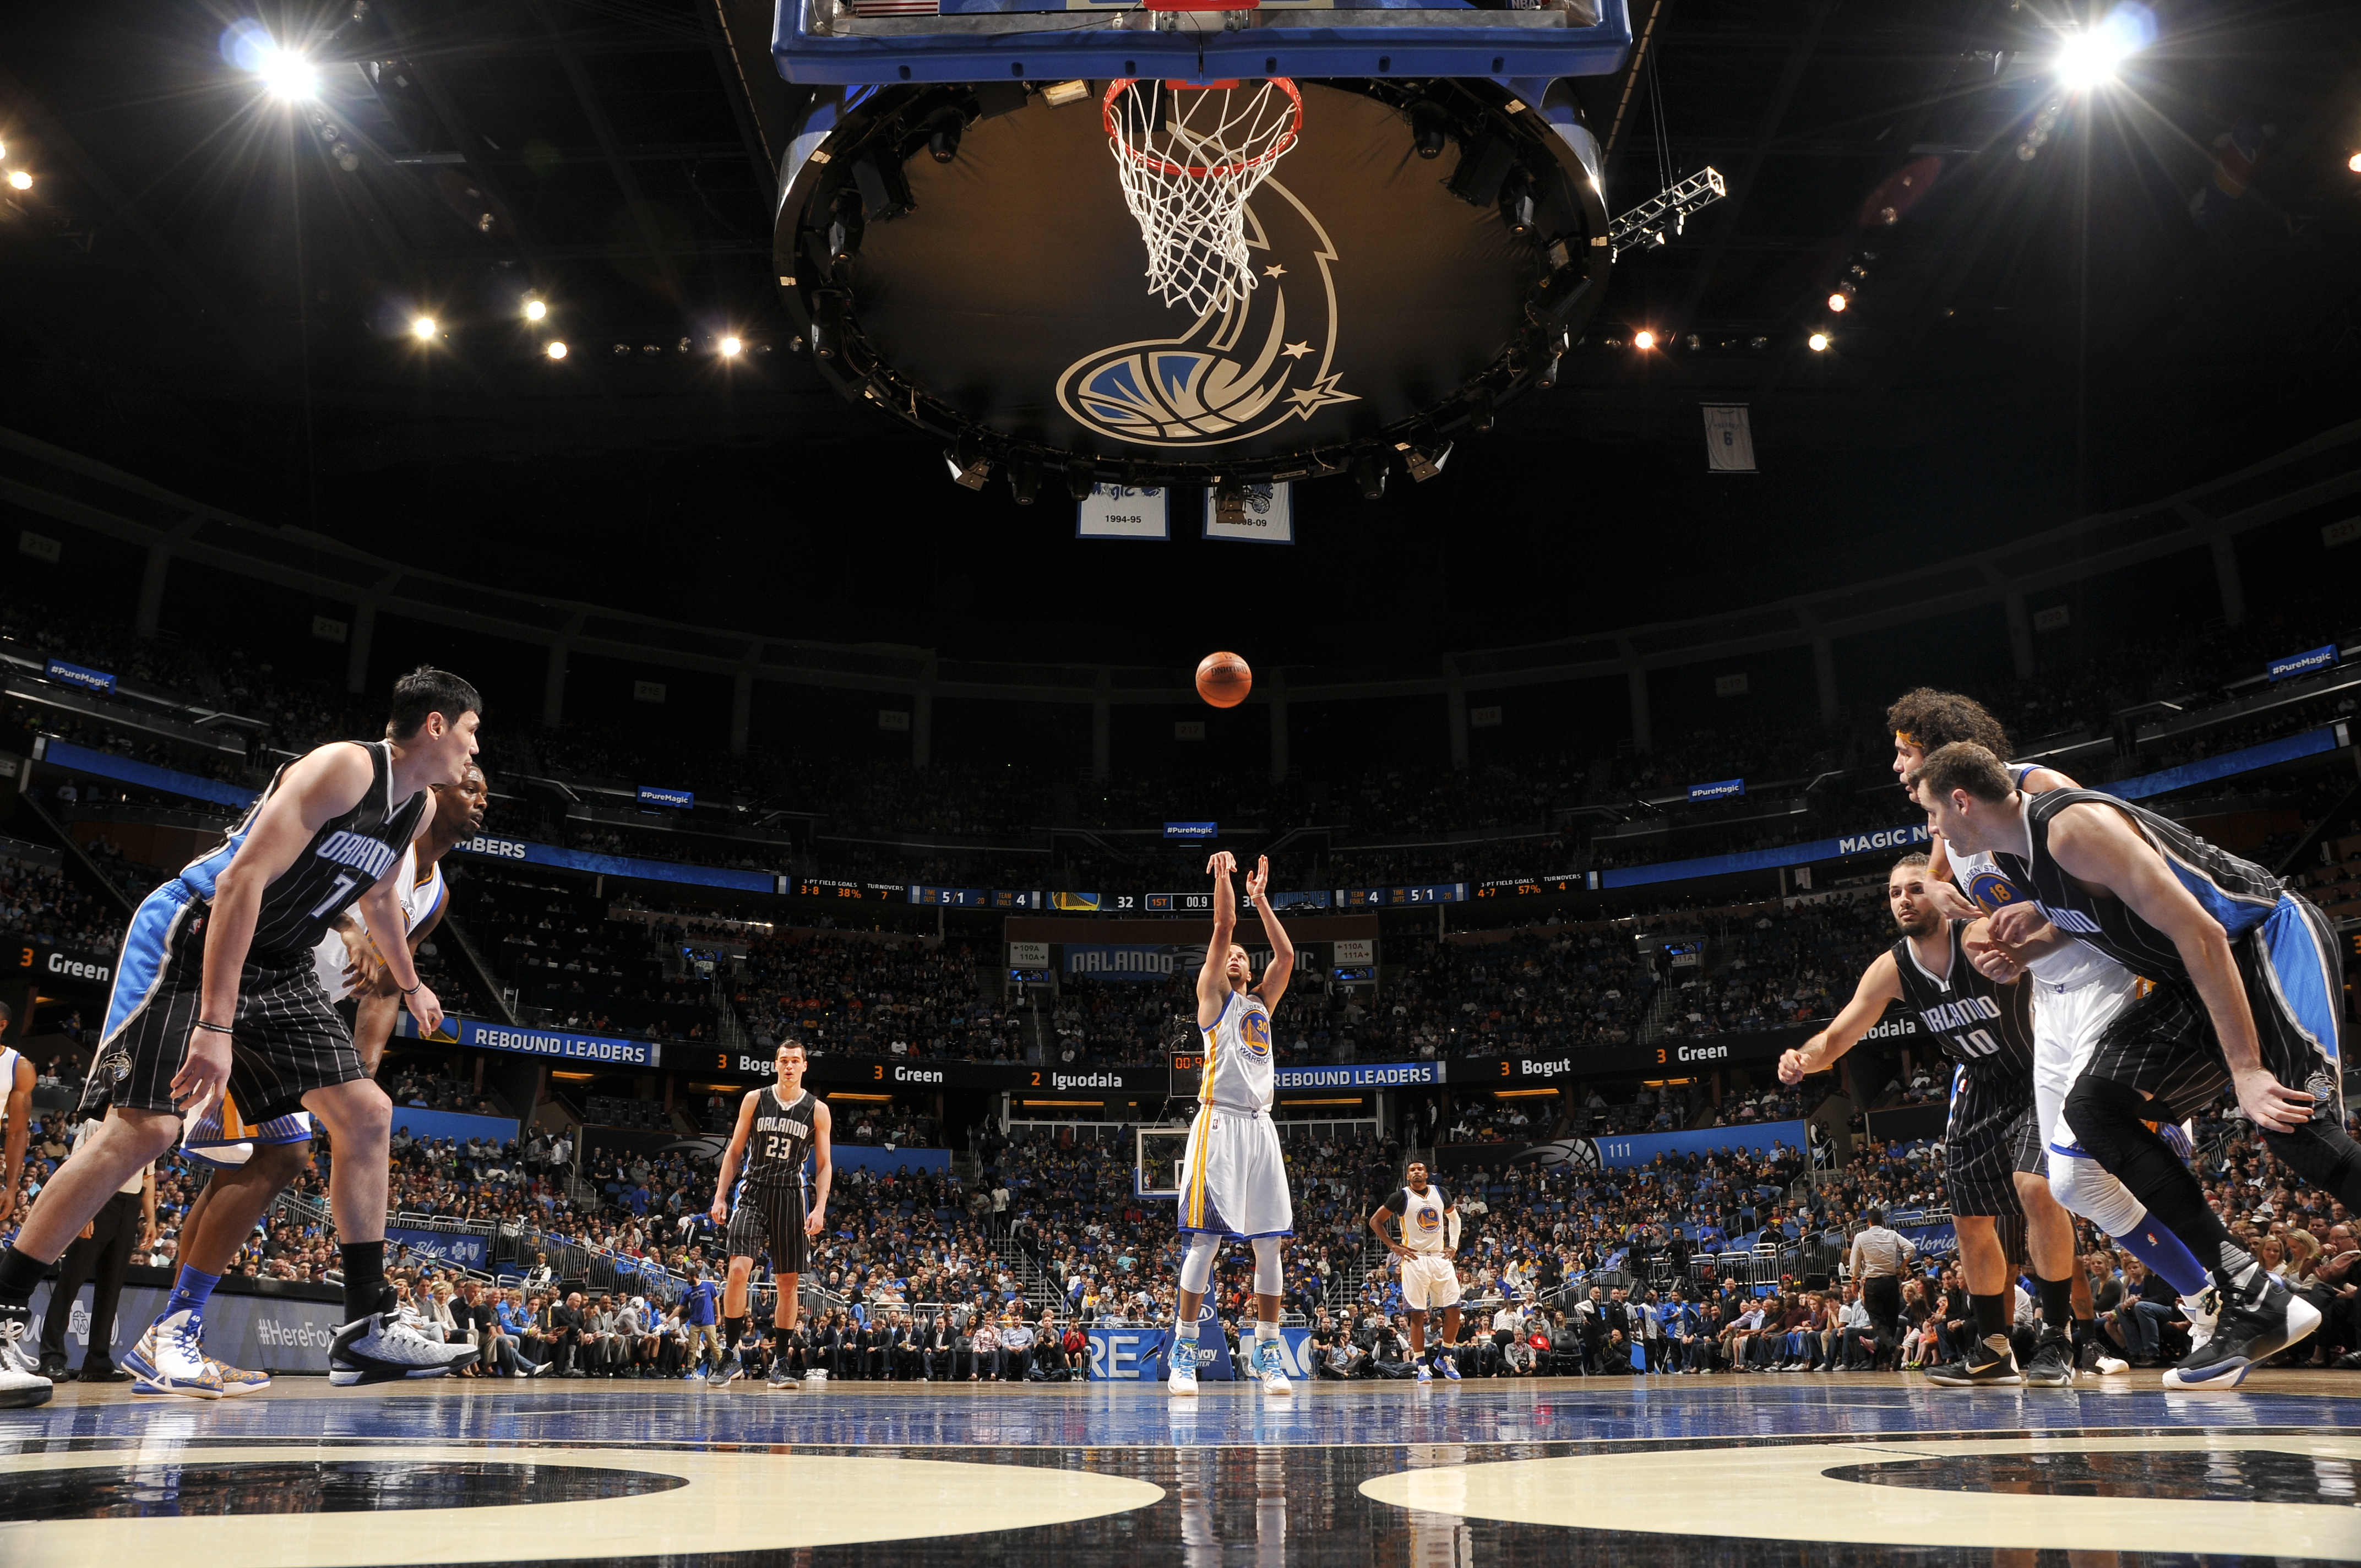 ORLANDO, FL - FEBRUARY 25:  Stephen Curry #30 of the Golden State Warriors prepares to shoot a free throw against the Orlando Magic on February 25, 2016 at Amway Center in Orlando, Florida. (Photo by Fernando Medina/NBAE via Getty Images)